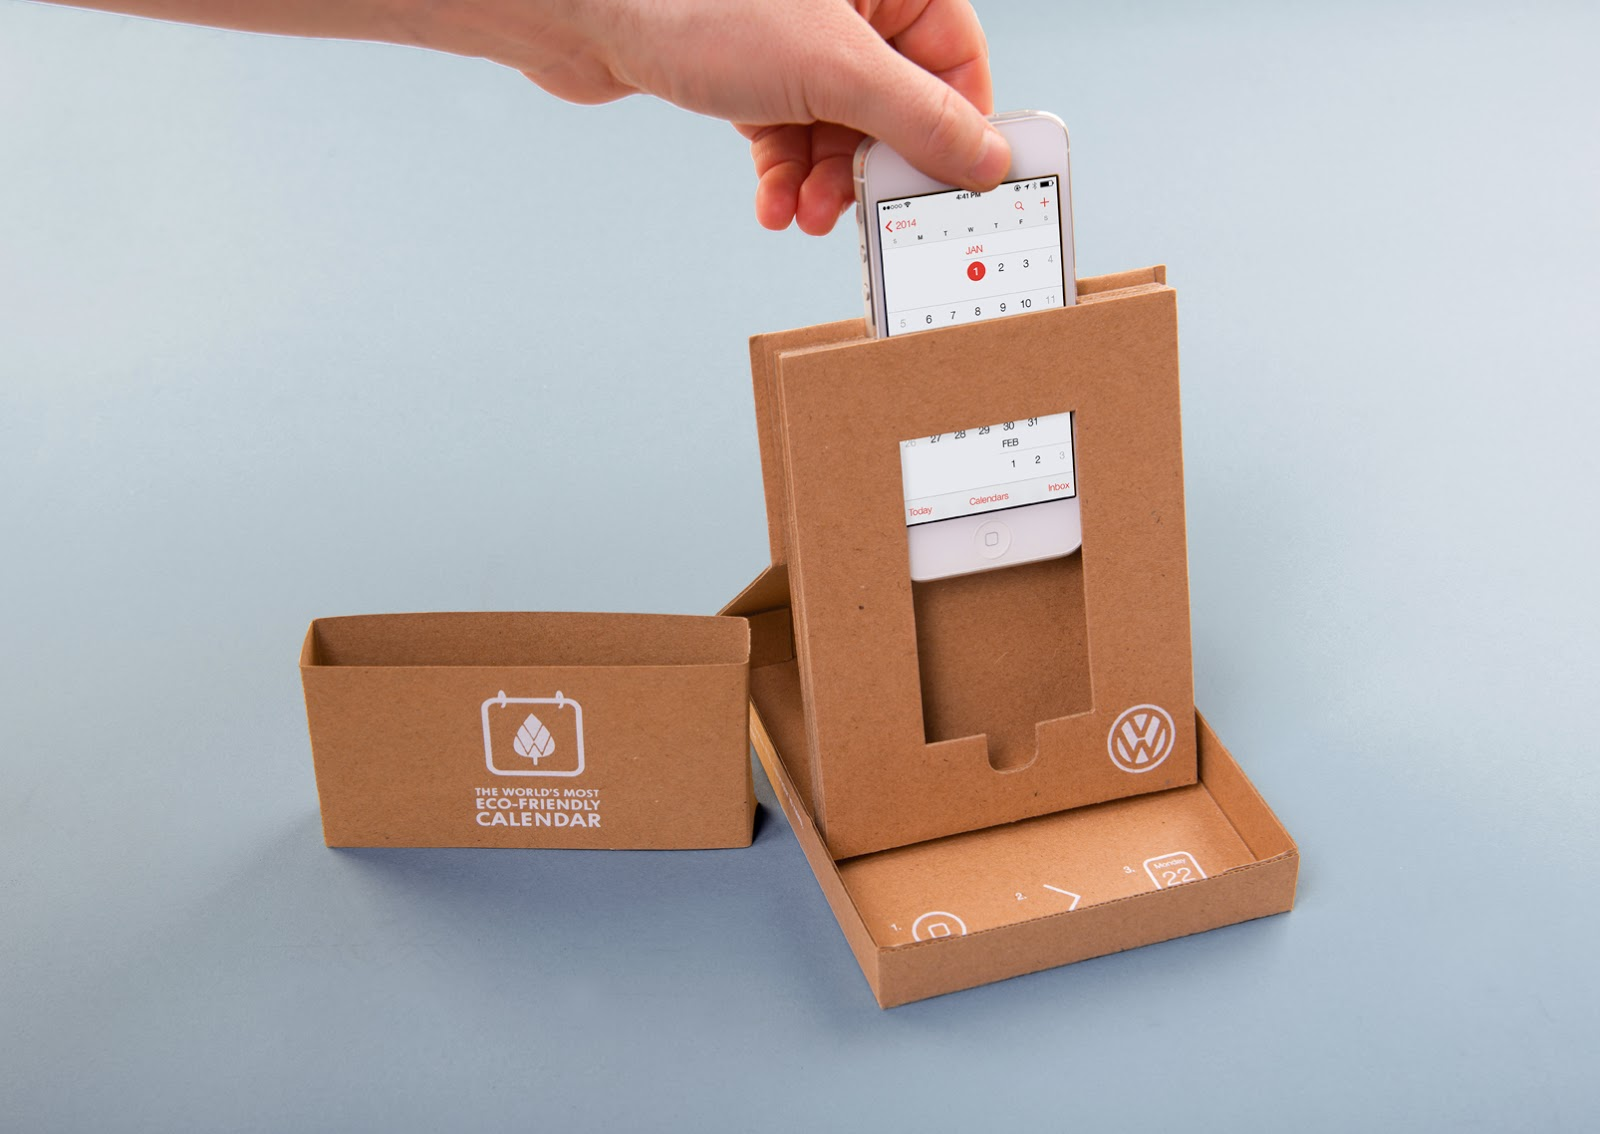 The World S Most Eco Friendly Calendar On Packaging Of The